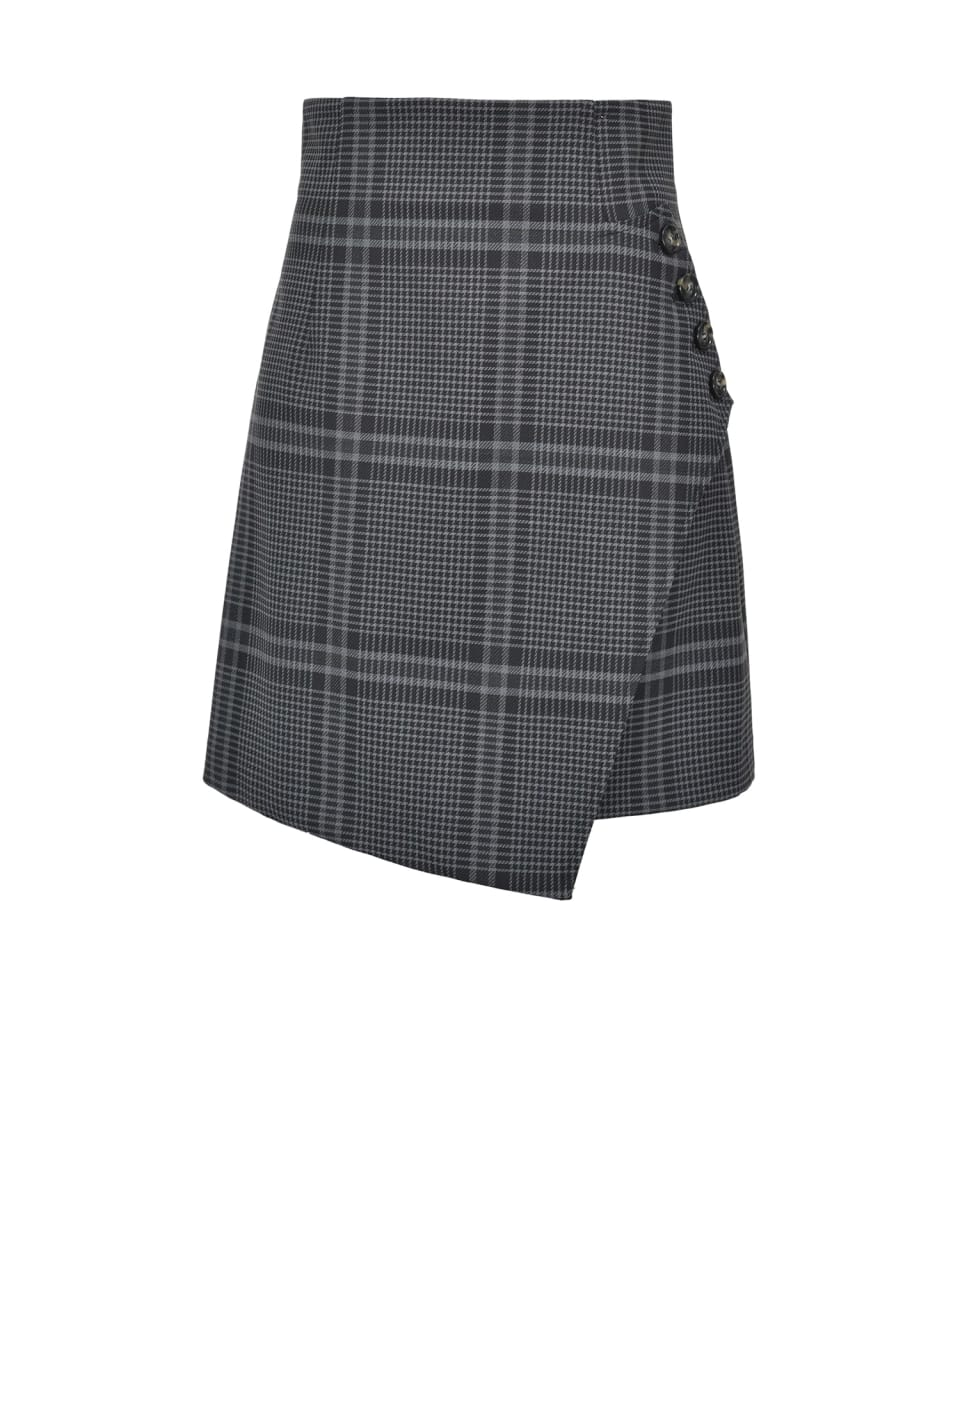 Stretch maxi check miniskirt - Pinko